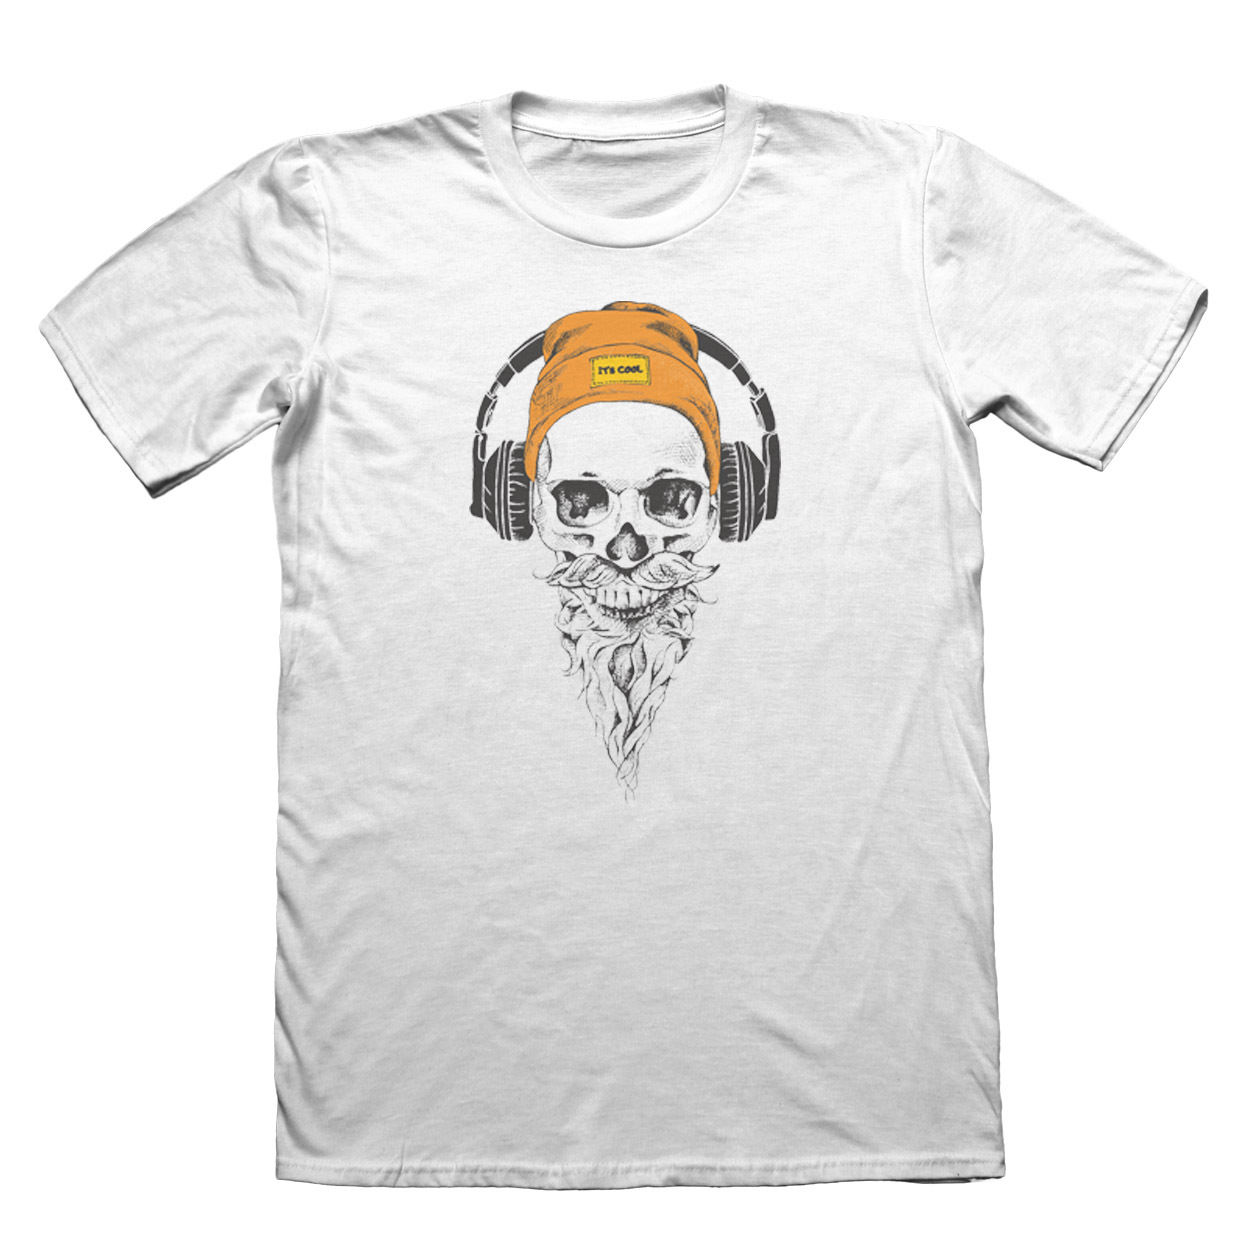 Hipster Skull T-Shirt - Mens Fathers Day Christmas Shirts Homme Novelty T shirt Men High Quality For Man Better